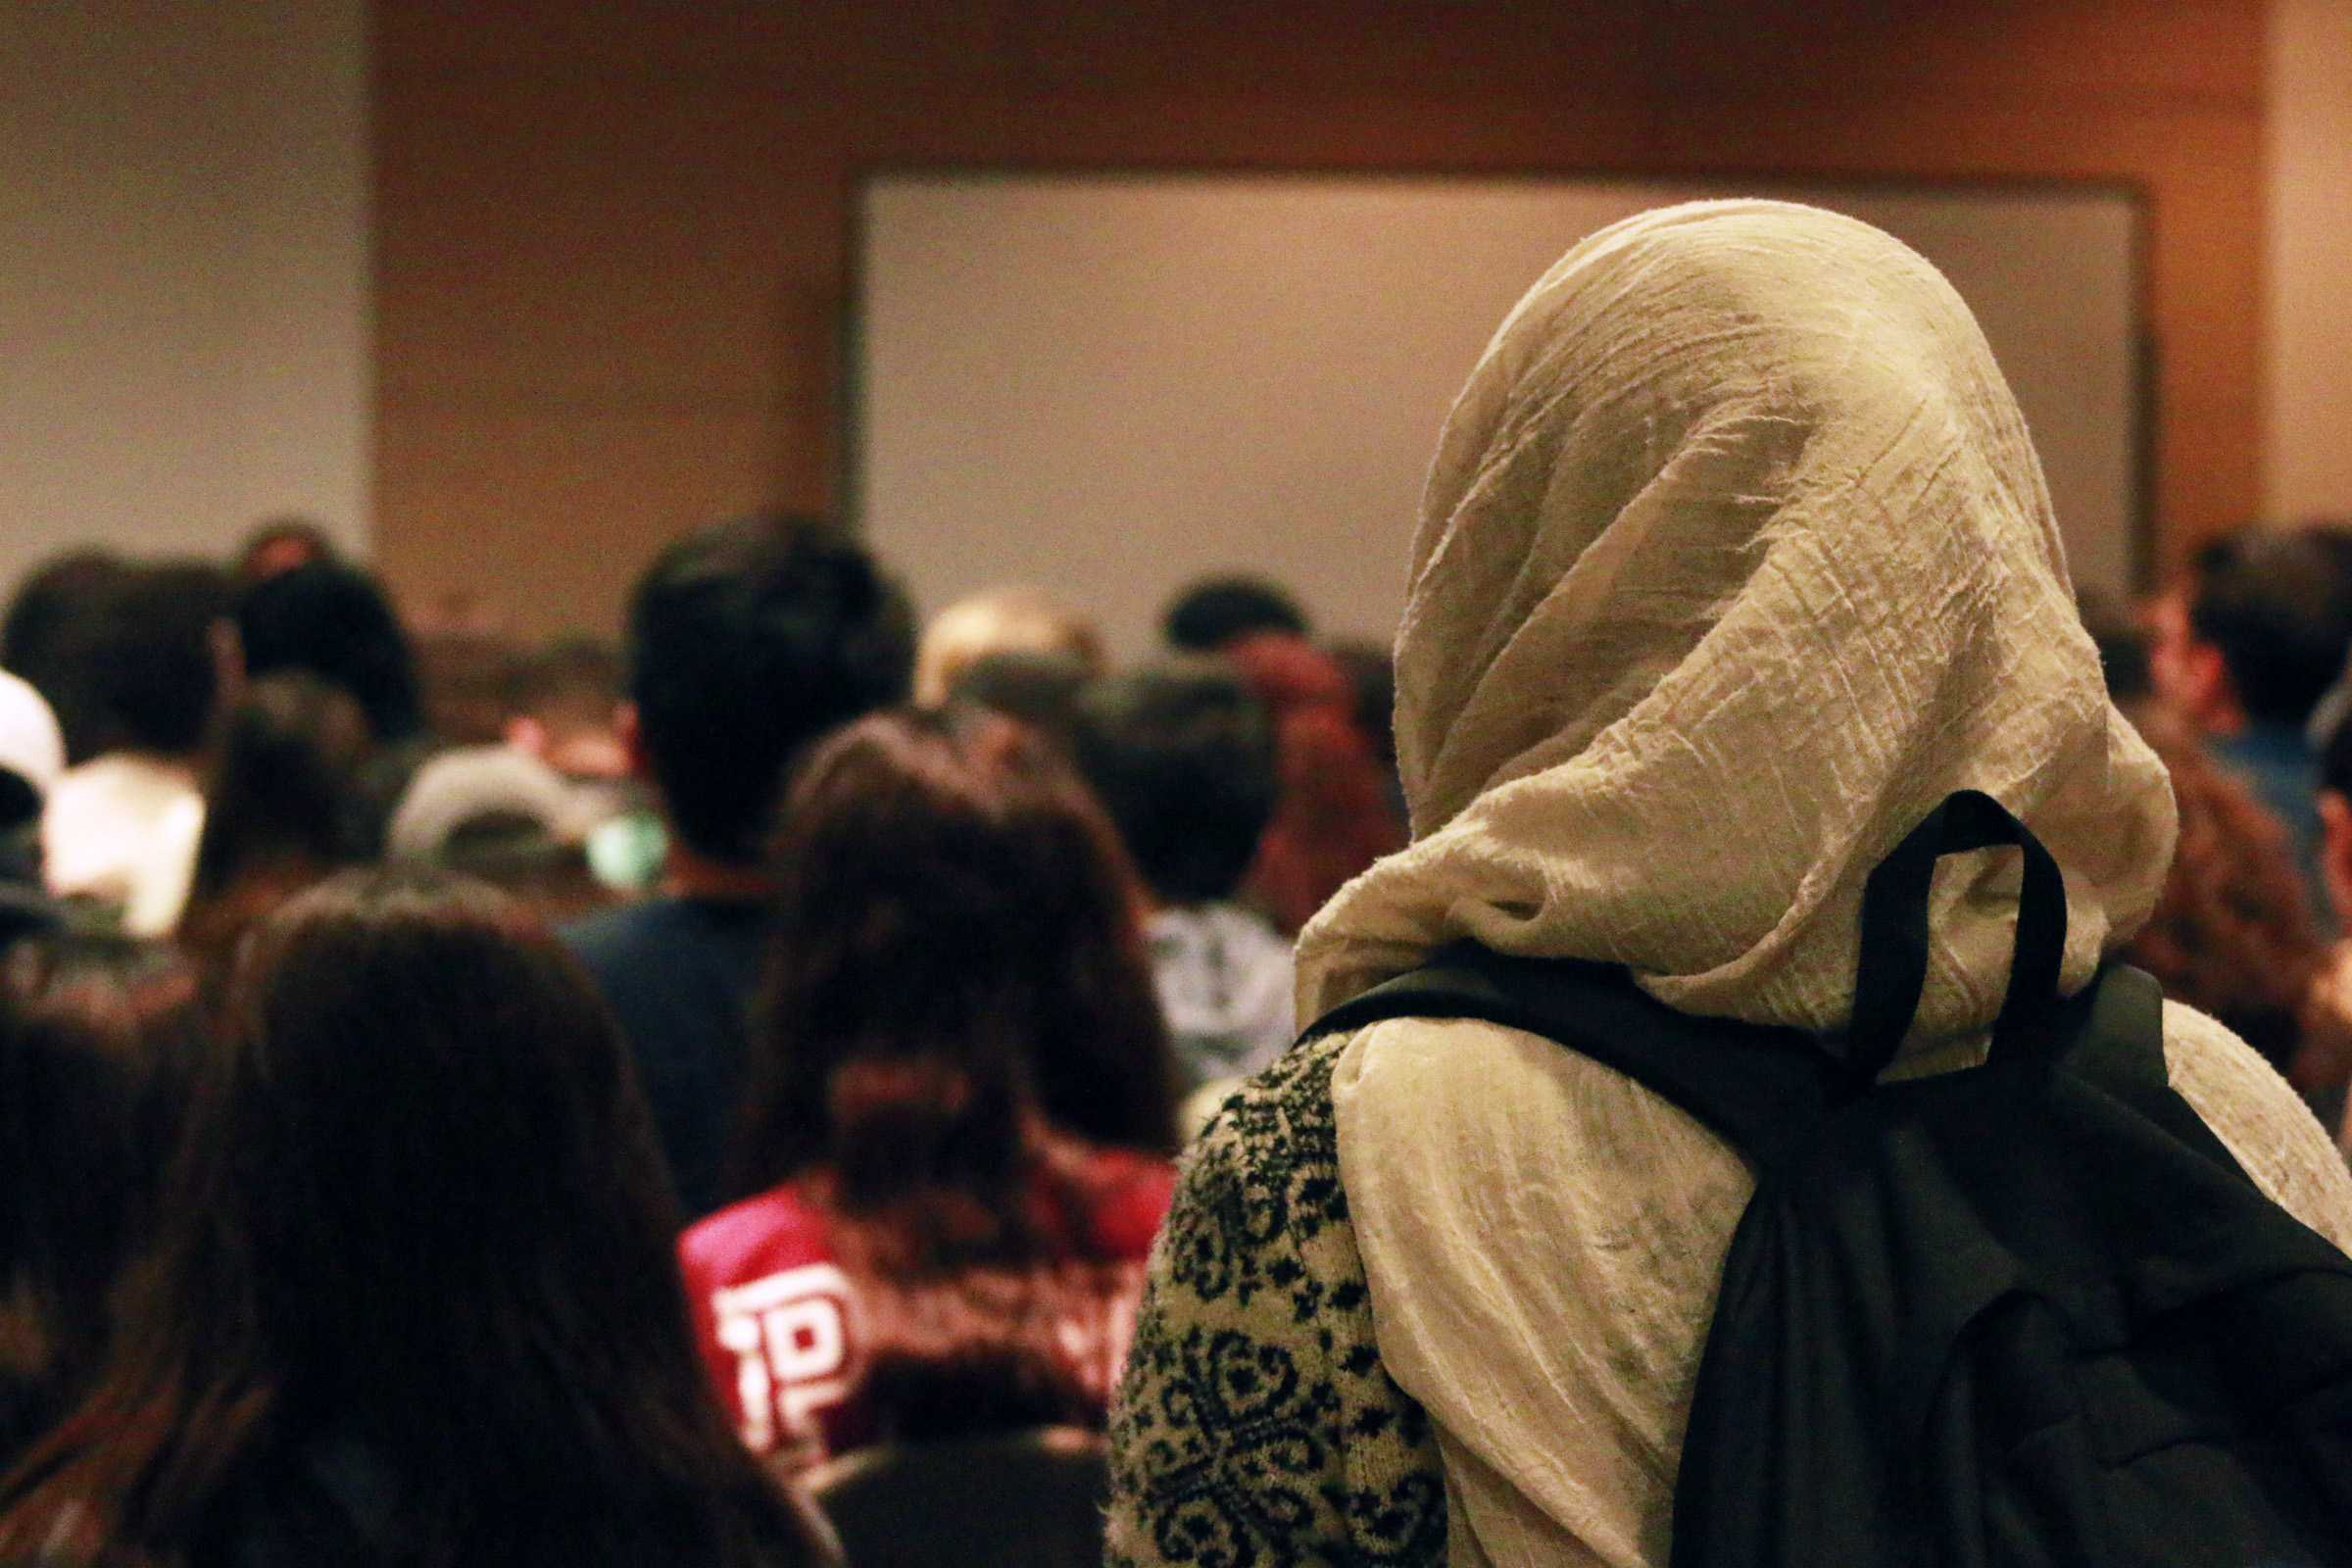 Many Islamic students wearing their traditional hijab came in numbers to support the lecture. Photo credit: Nate Graham